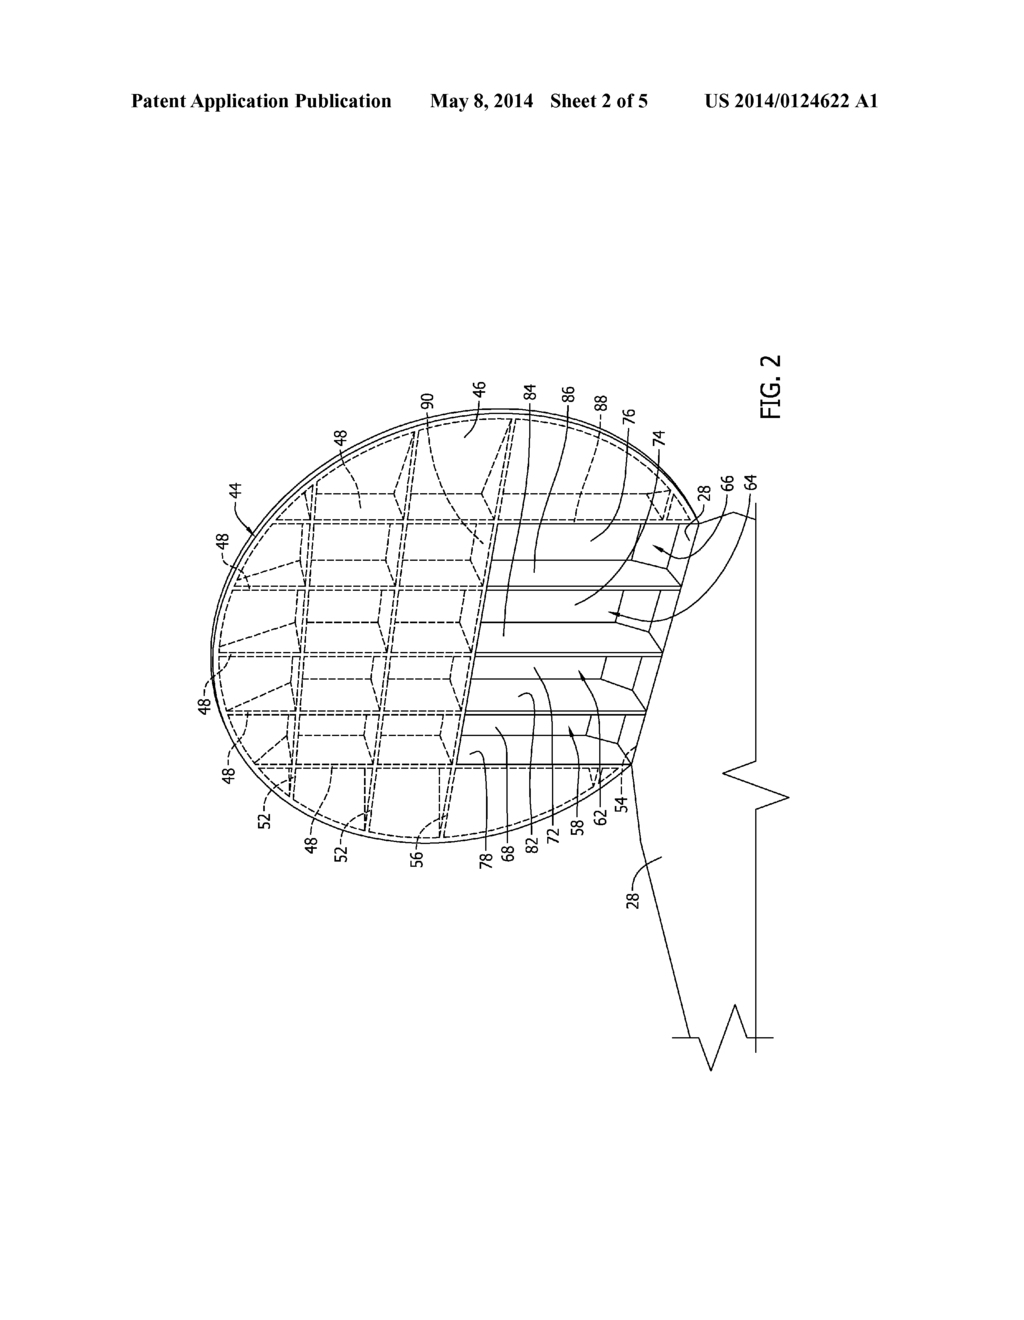 hight resolution of  bulkhead wall surface and a galley moved rearwardly into the recessed cavity increasing floor space in front of the galley diagram schematic